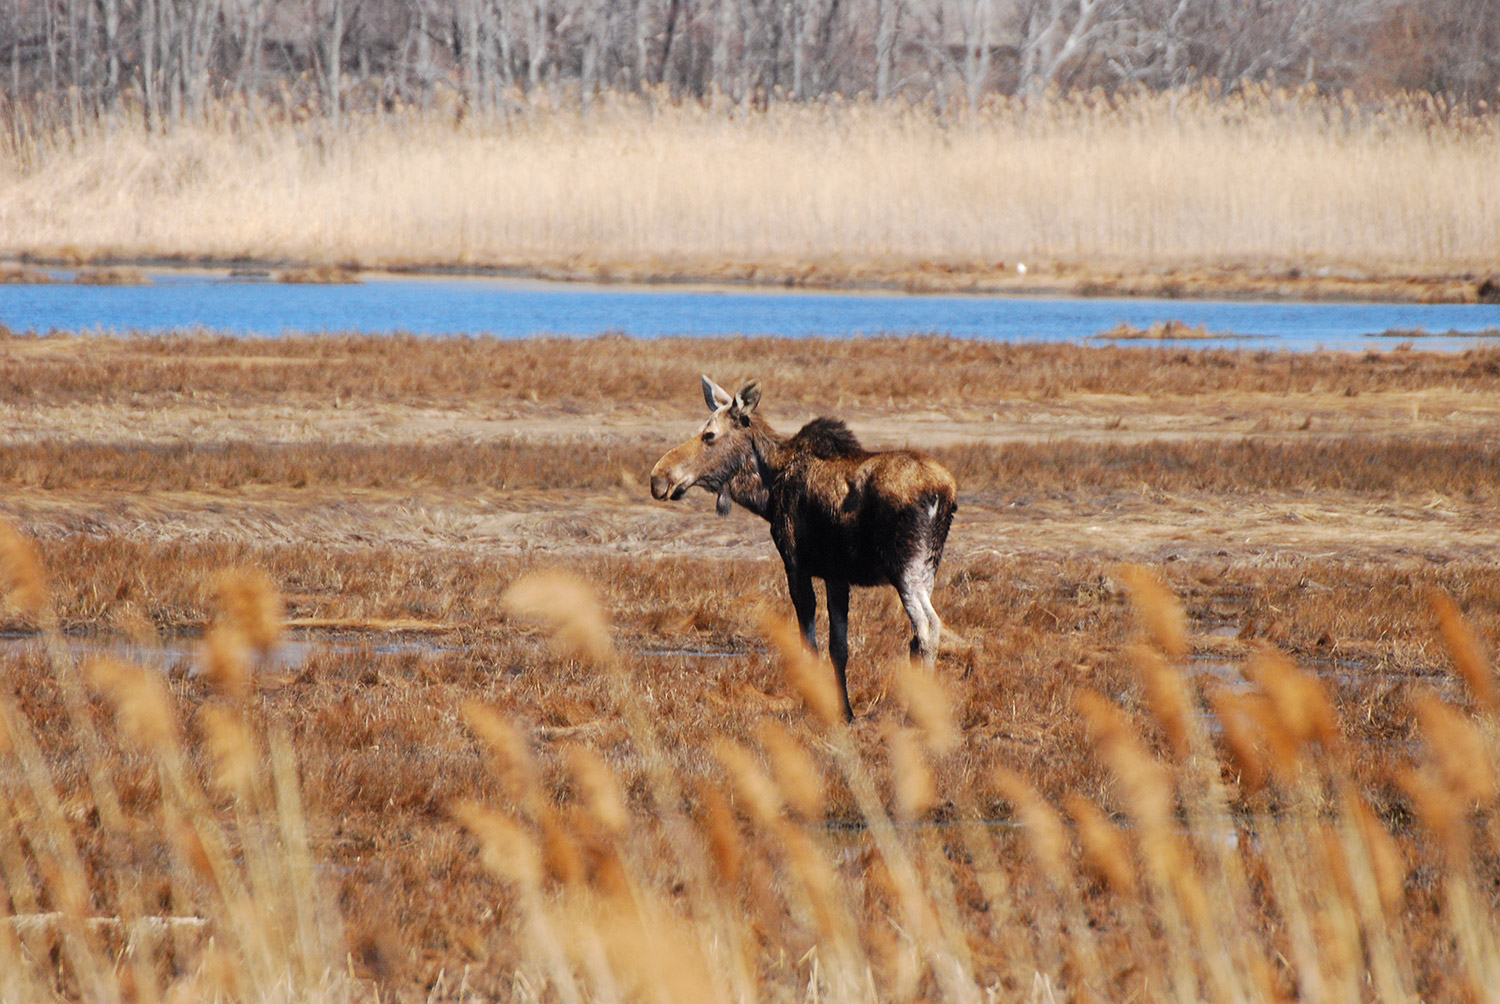 In the salt marsh off Furbish Road in Wells on April 19, Bruce Bjork of Wells watched this moose meander just a few hundred yards from the ocean.